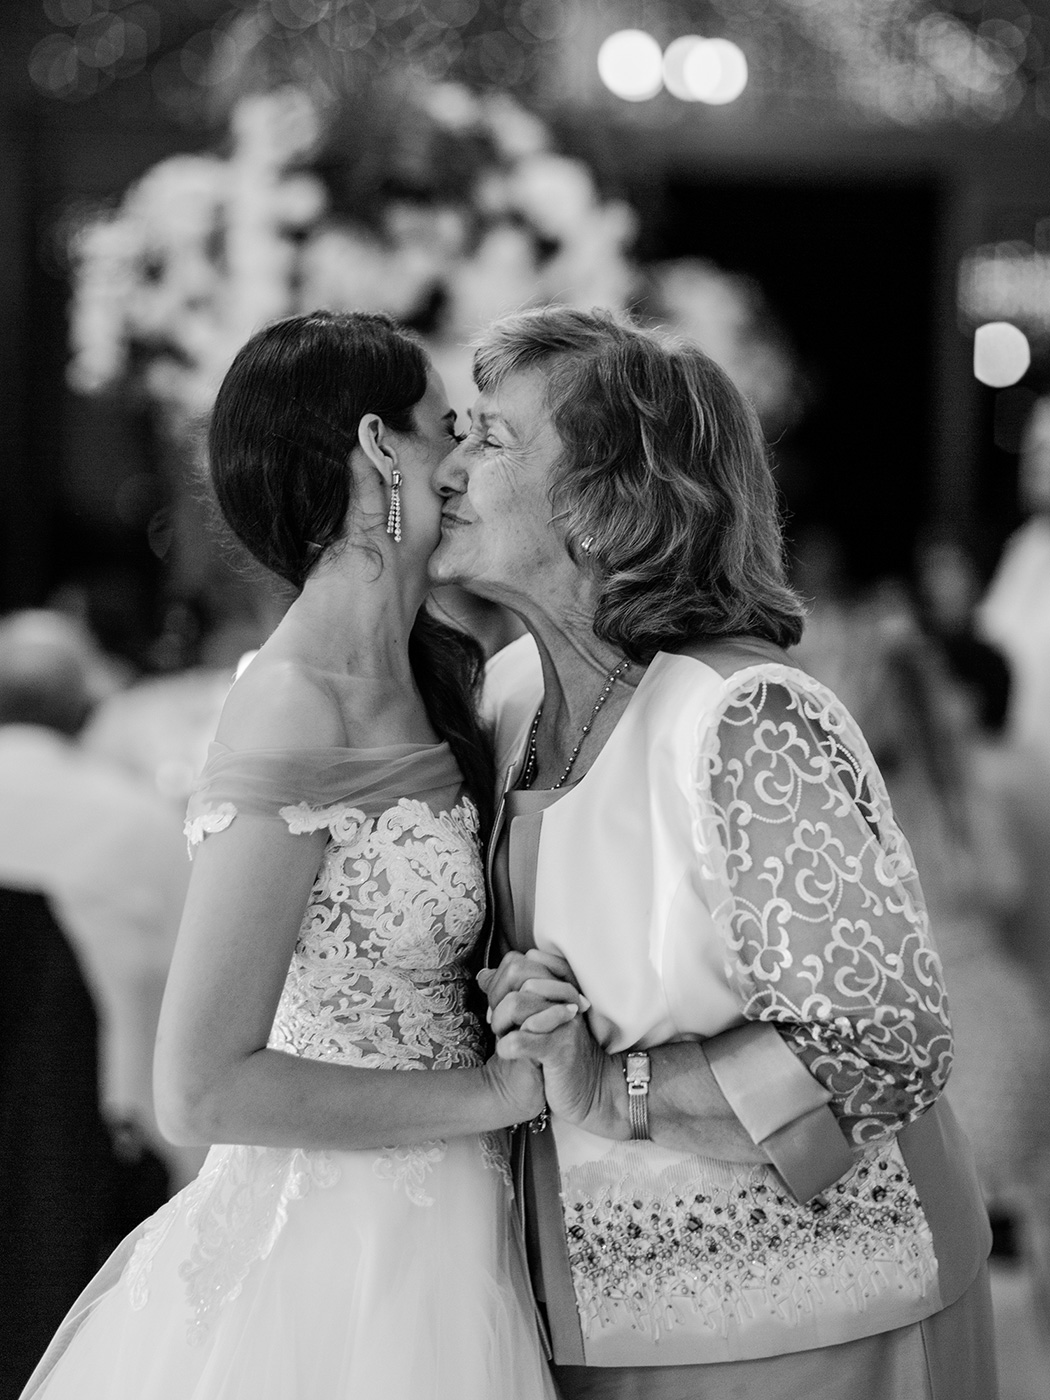 Grandmother & Bride | Rensche Mari